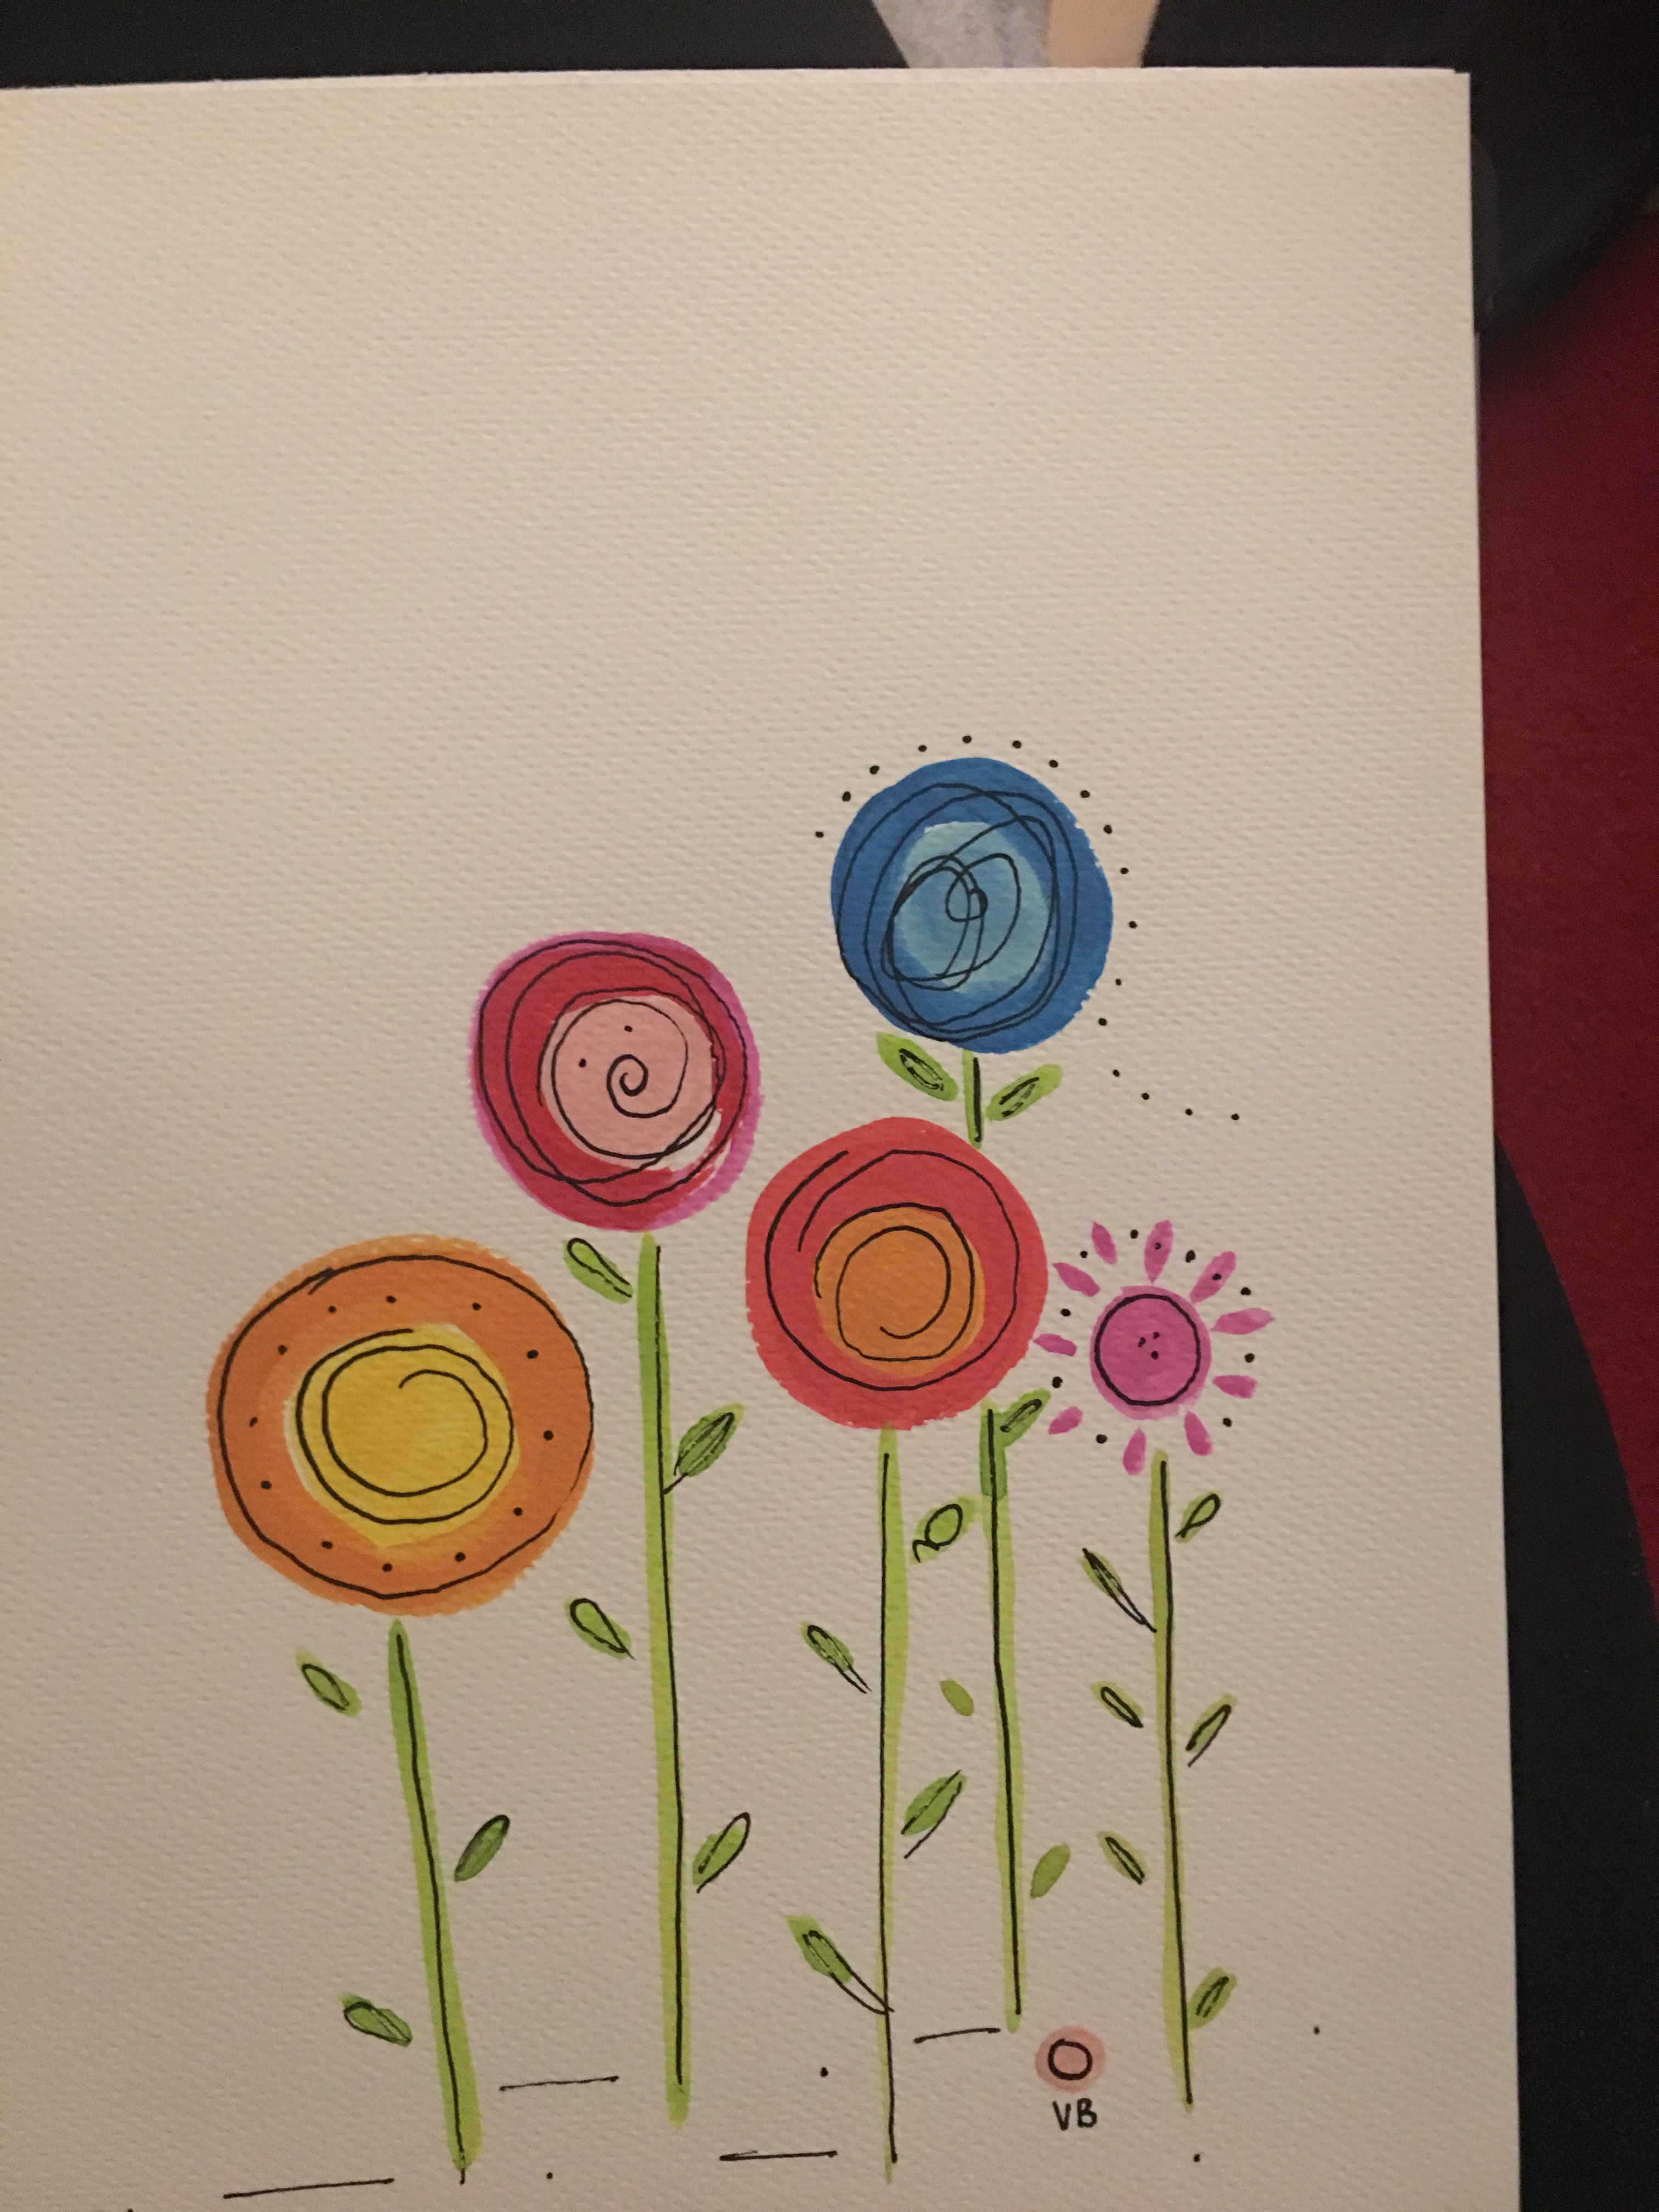 Pin By Valeria Bencic On Art With Images Flower Drawing Easy